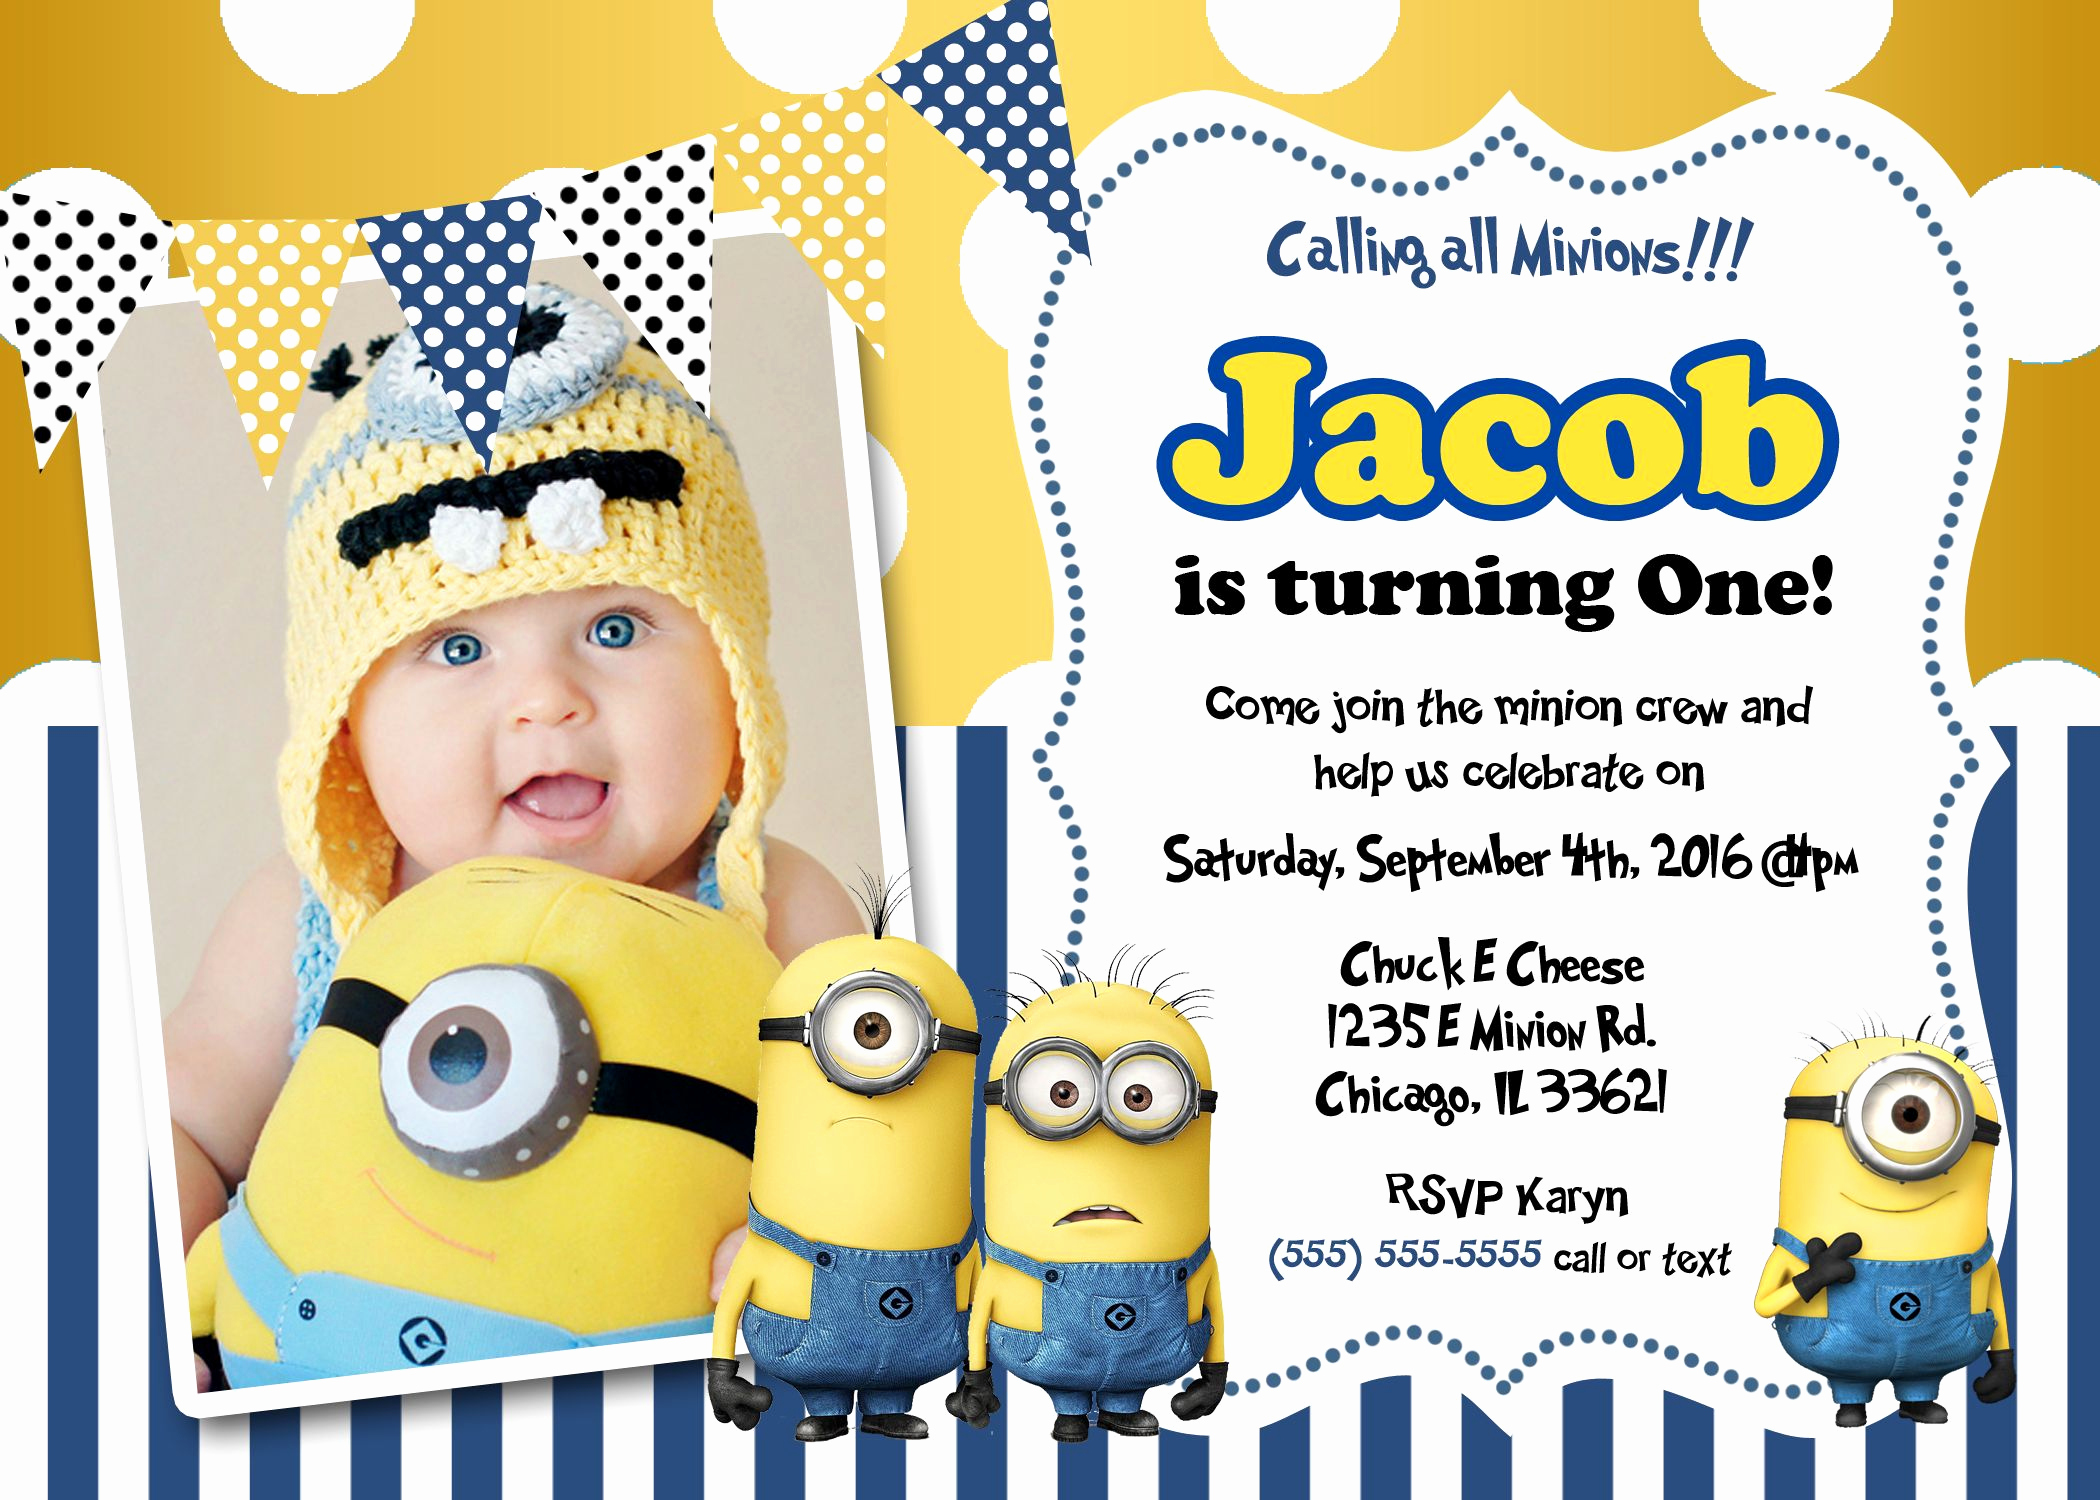 Minions Birthday Invitation Maker Luxury Minions Birthday Invitations